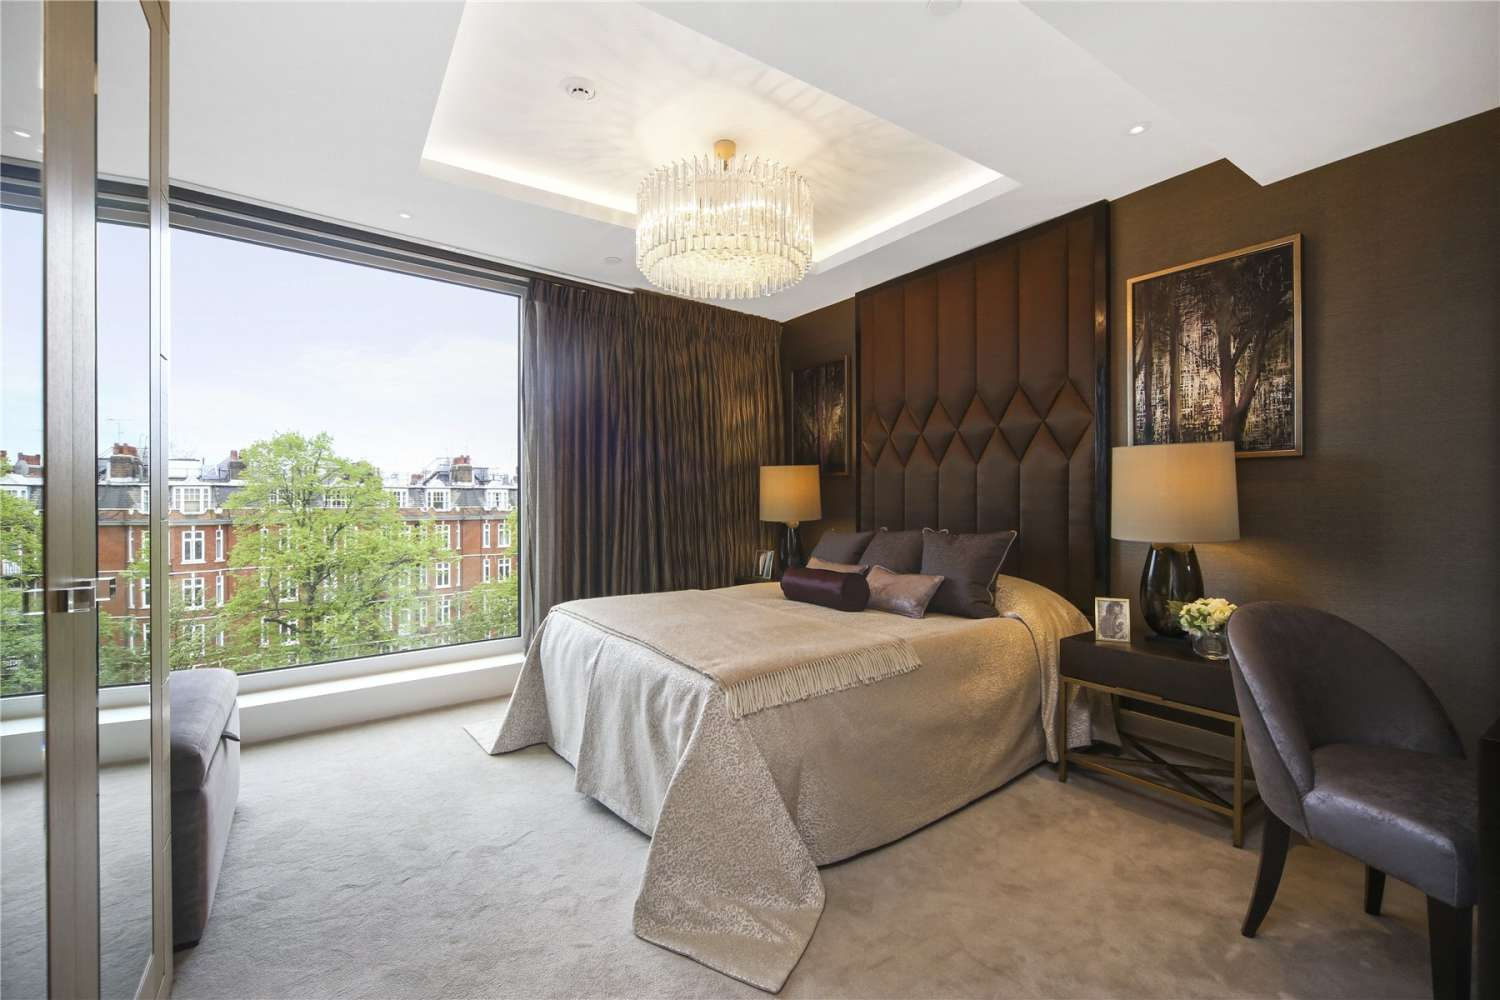 Apartment Kensington, W14 - Benson House 7 Radnor Terrace Kensington London - 05